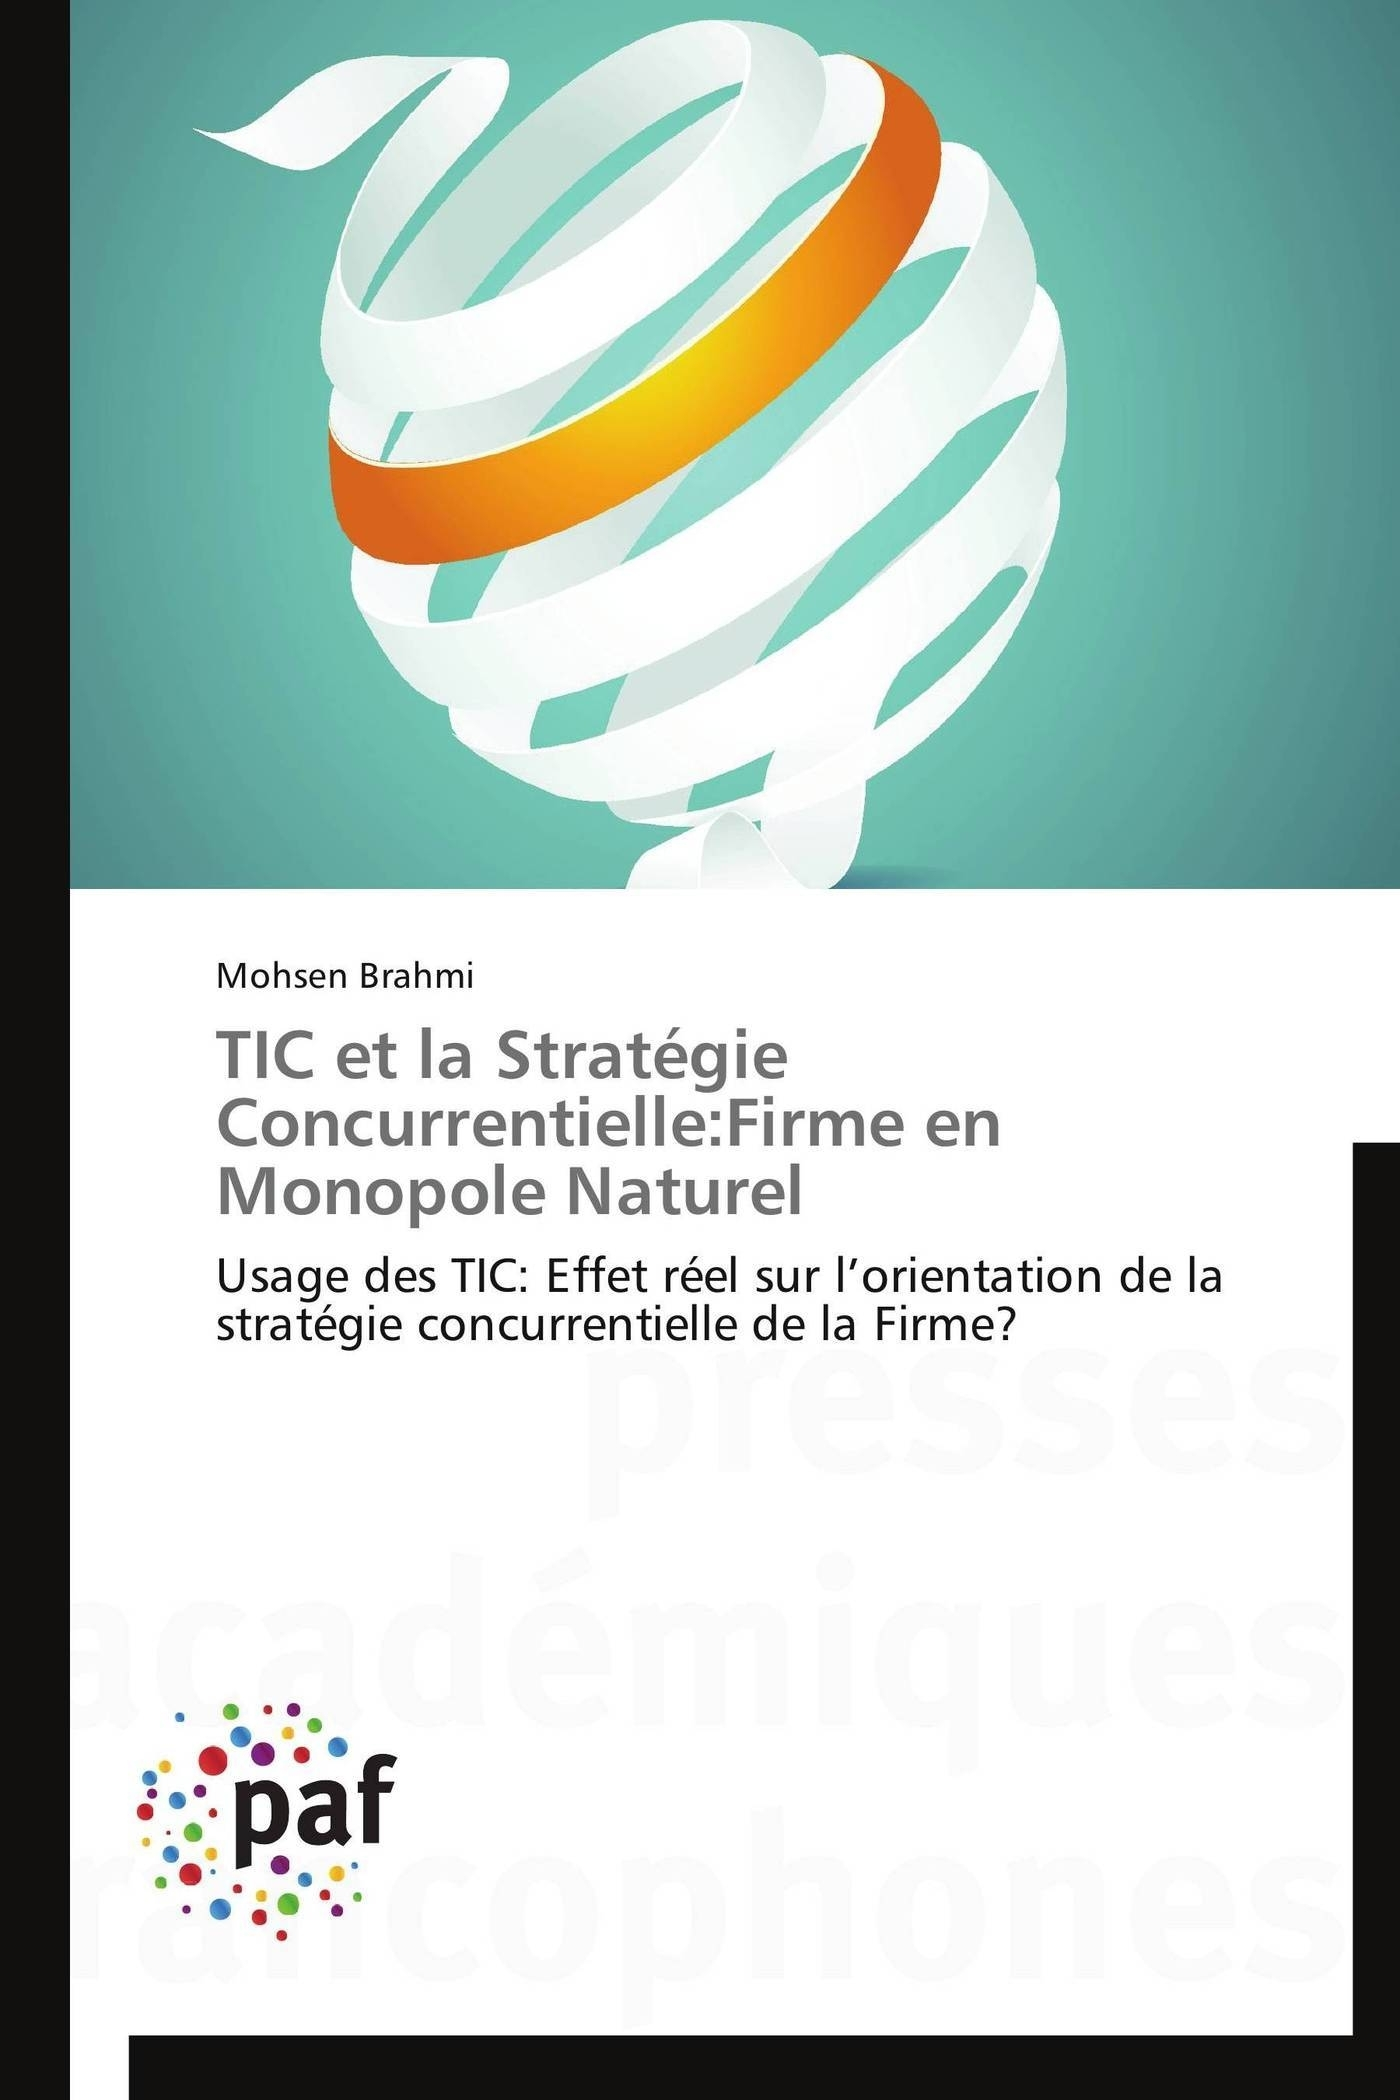 TIC ET LA STRATEGIE CONCURRENTIELLE:FIRME EN MONOPOLE NATUREL